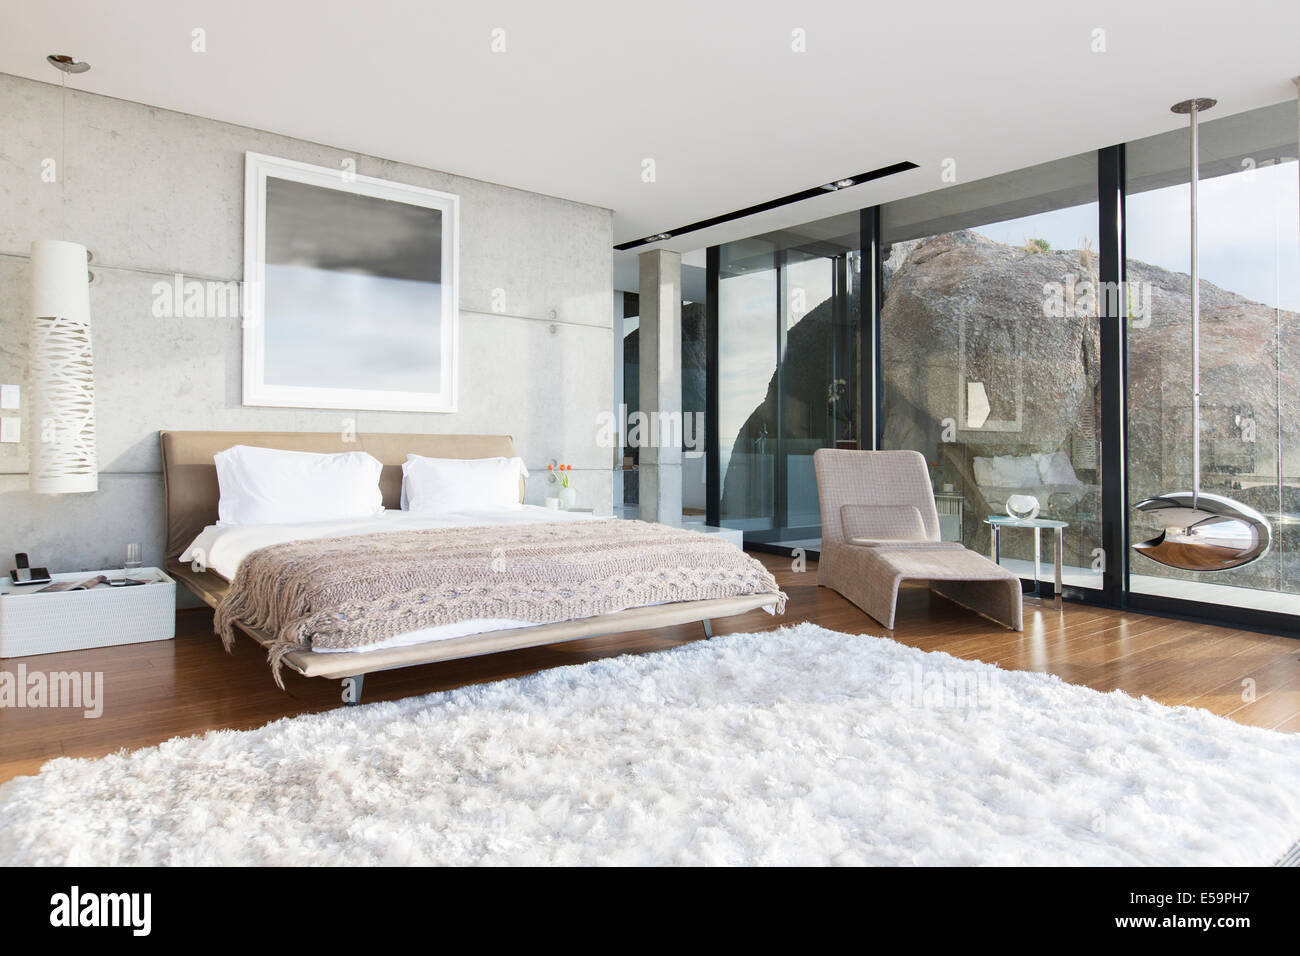 Shag rug in modern bedroom - Stock Image